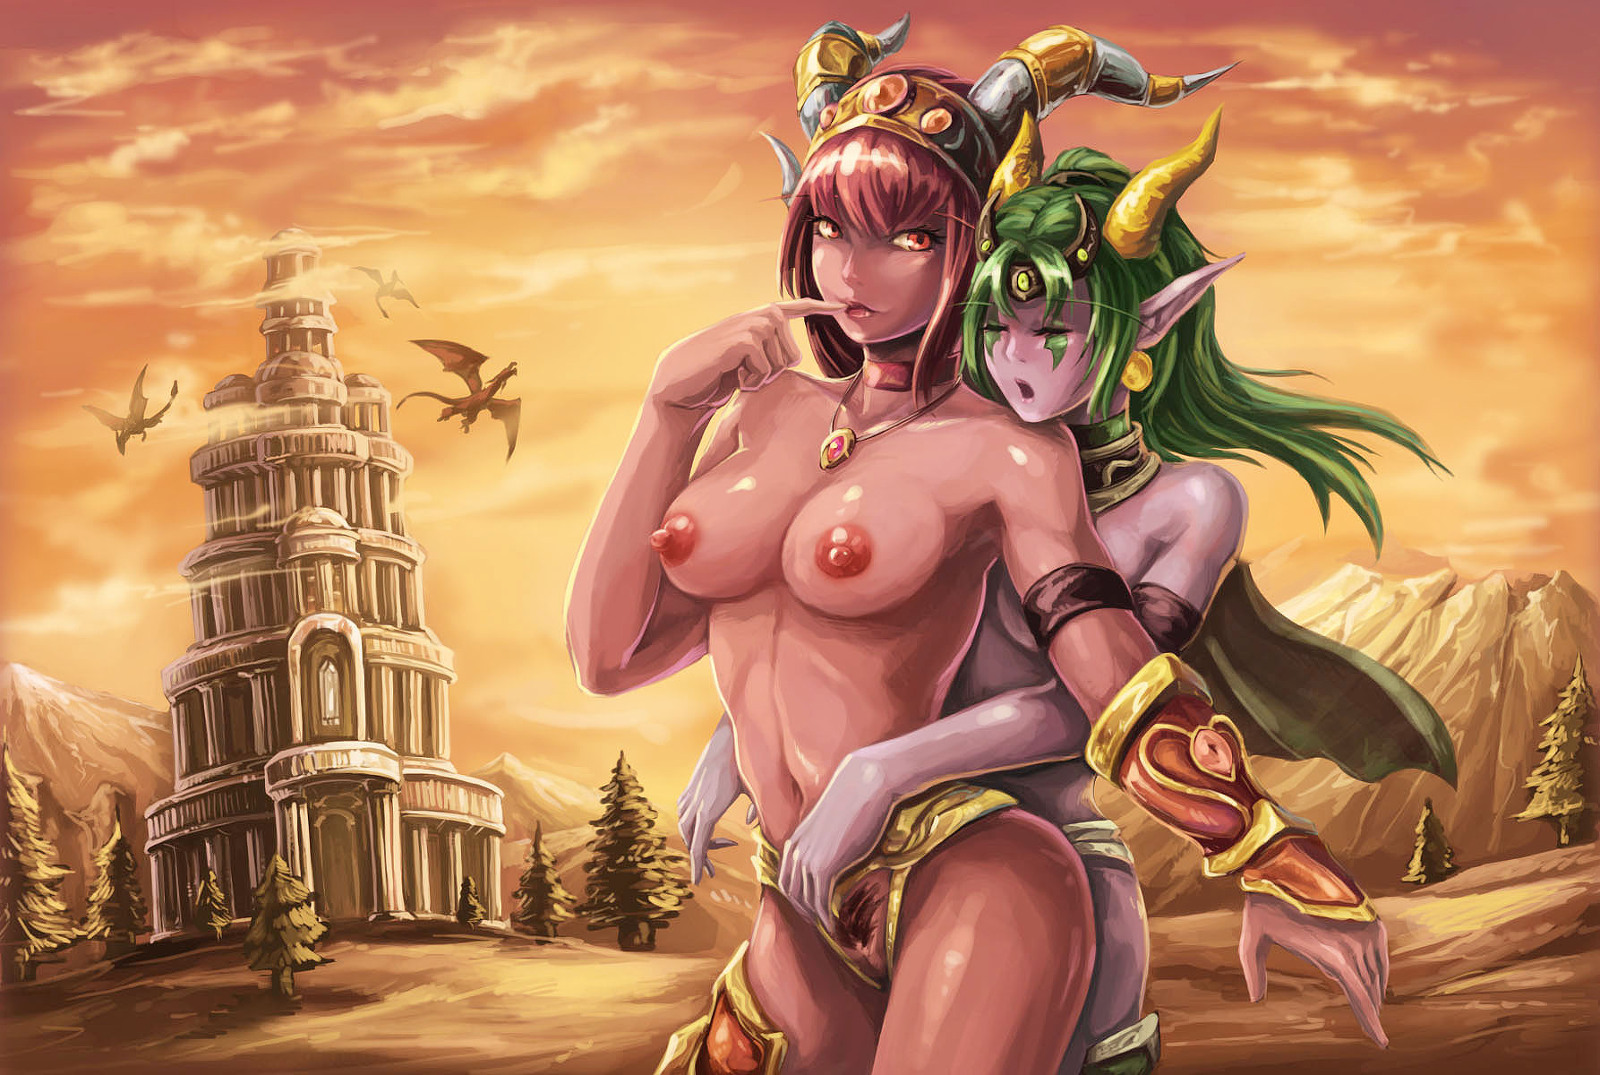 World of warcraft porn images erotic sister